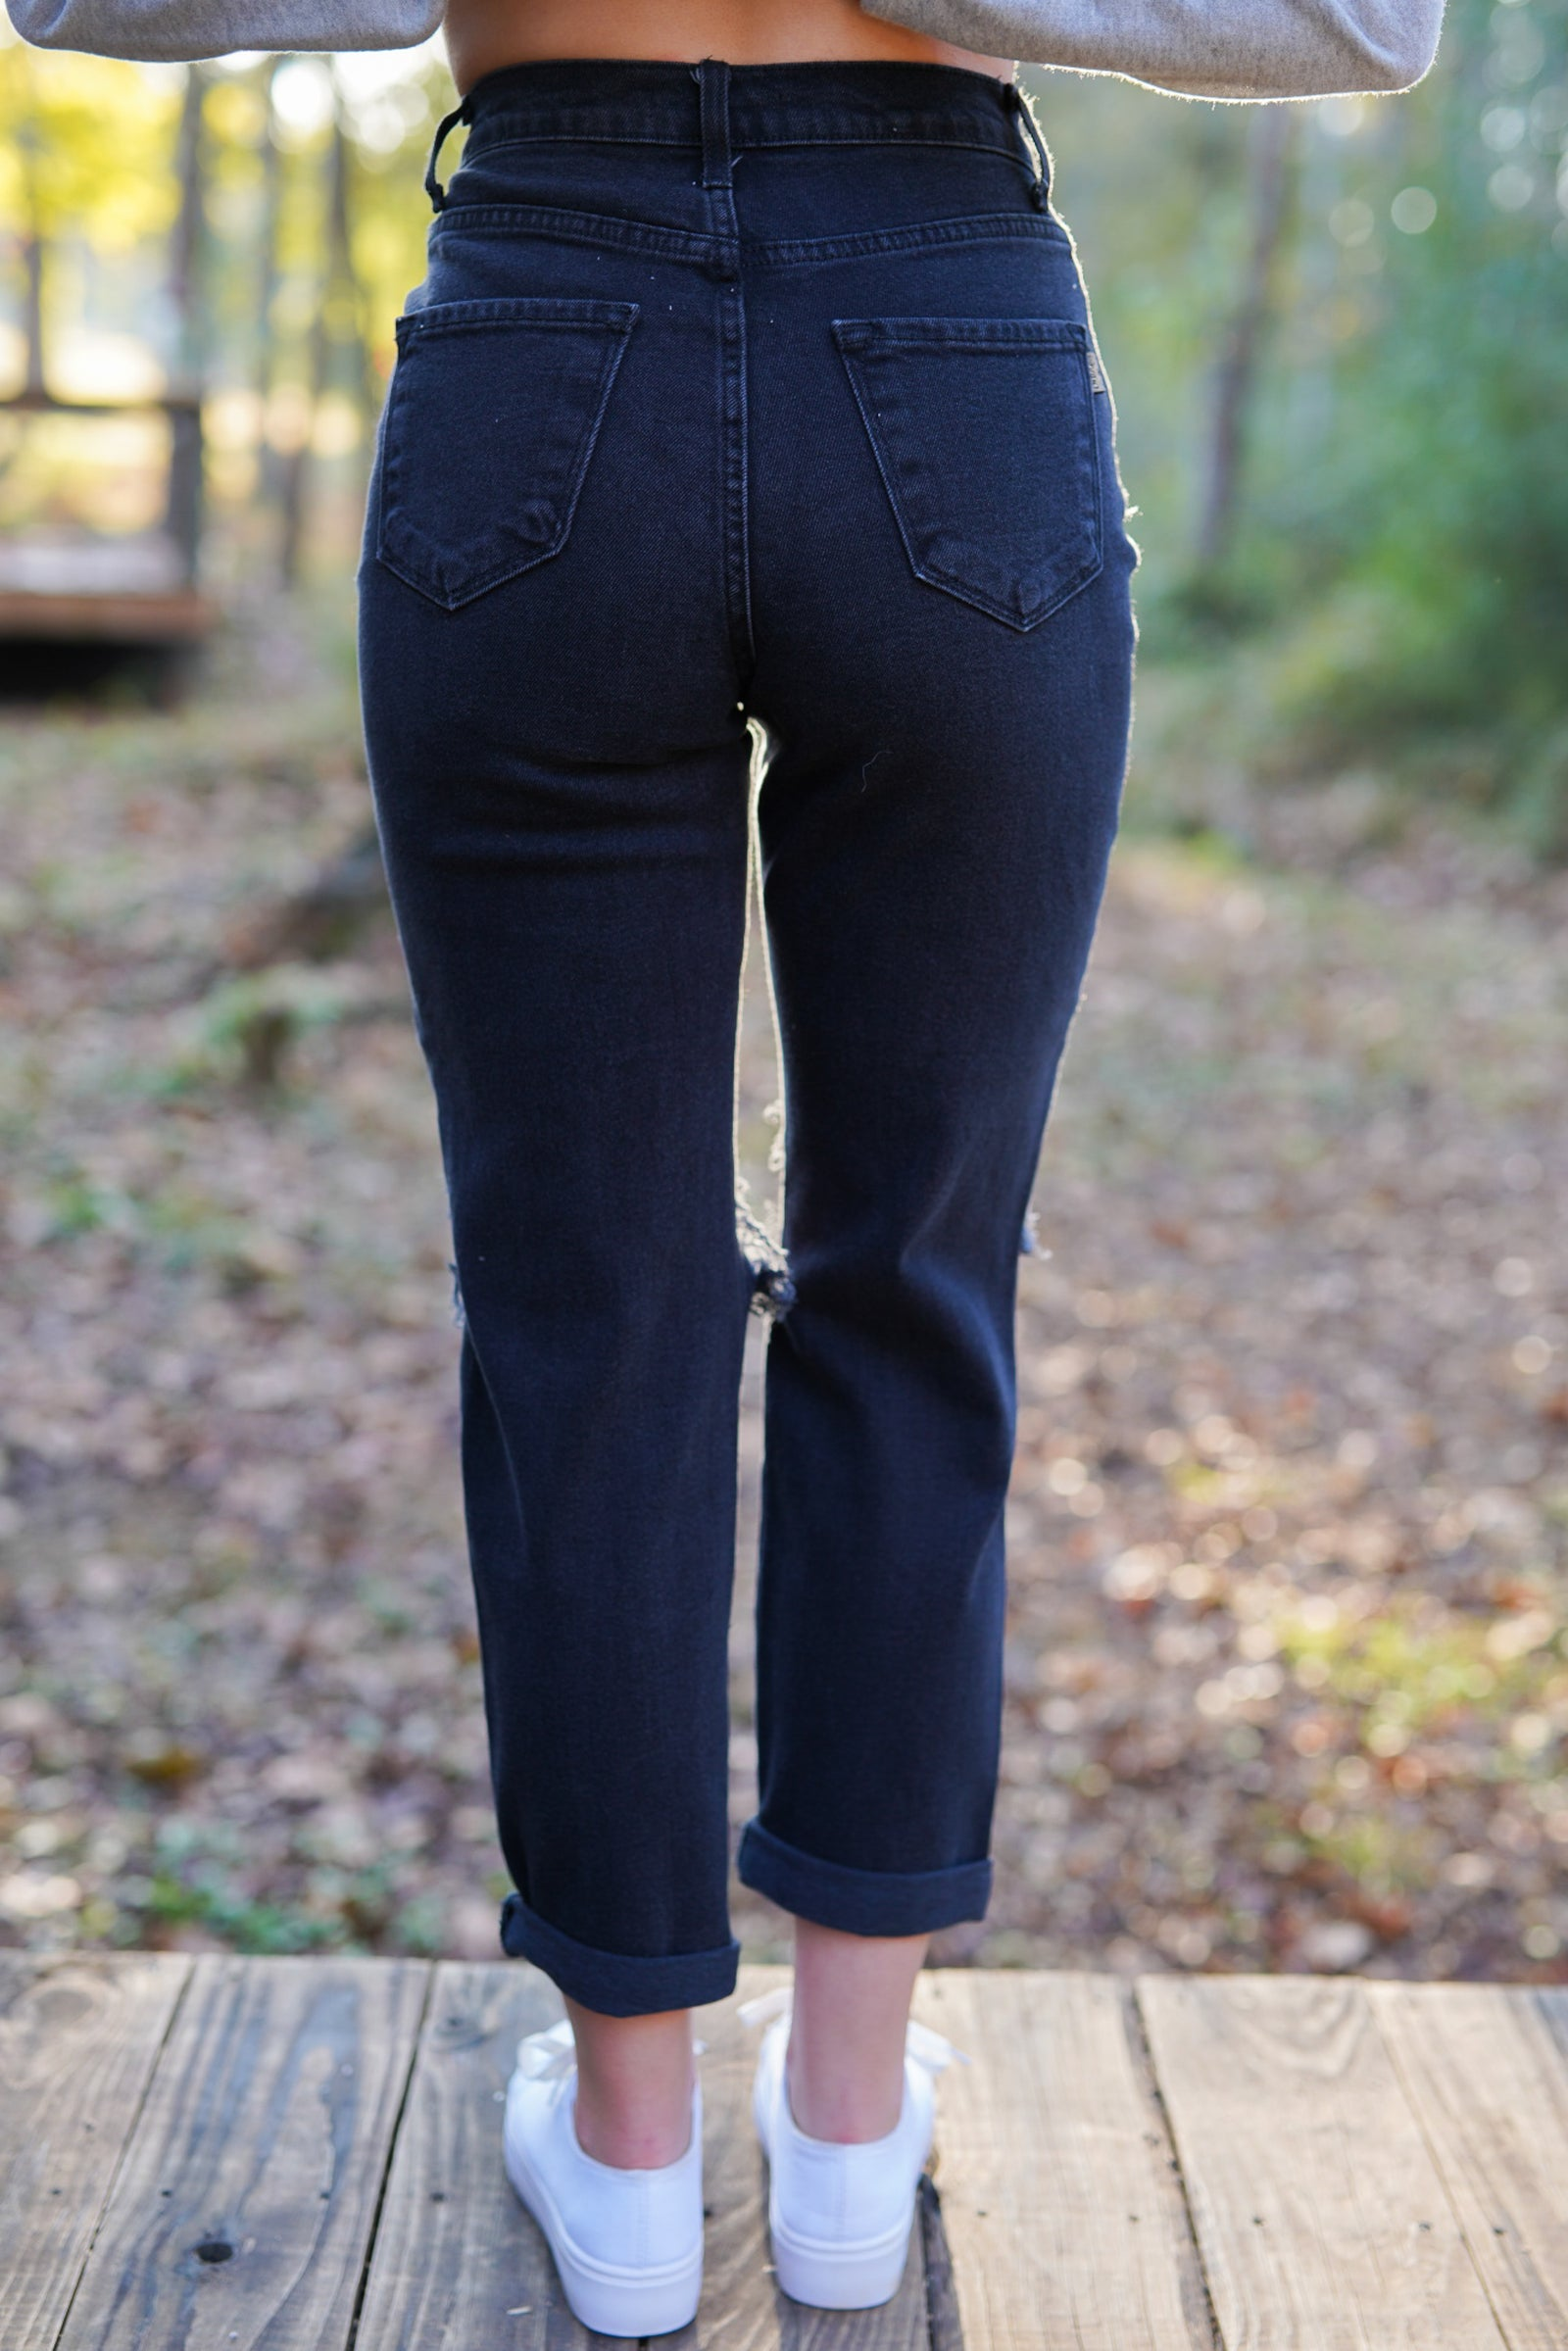 Panther Denim